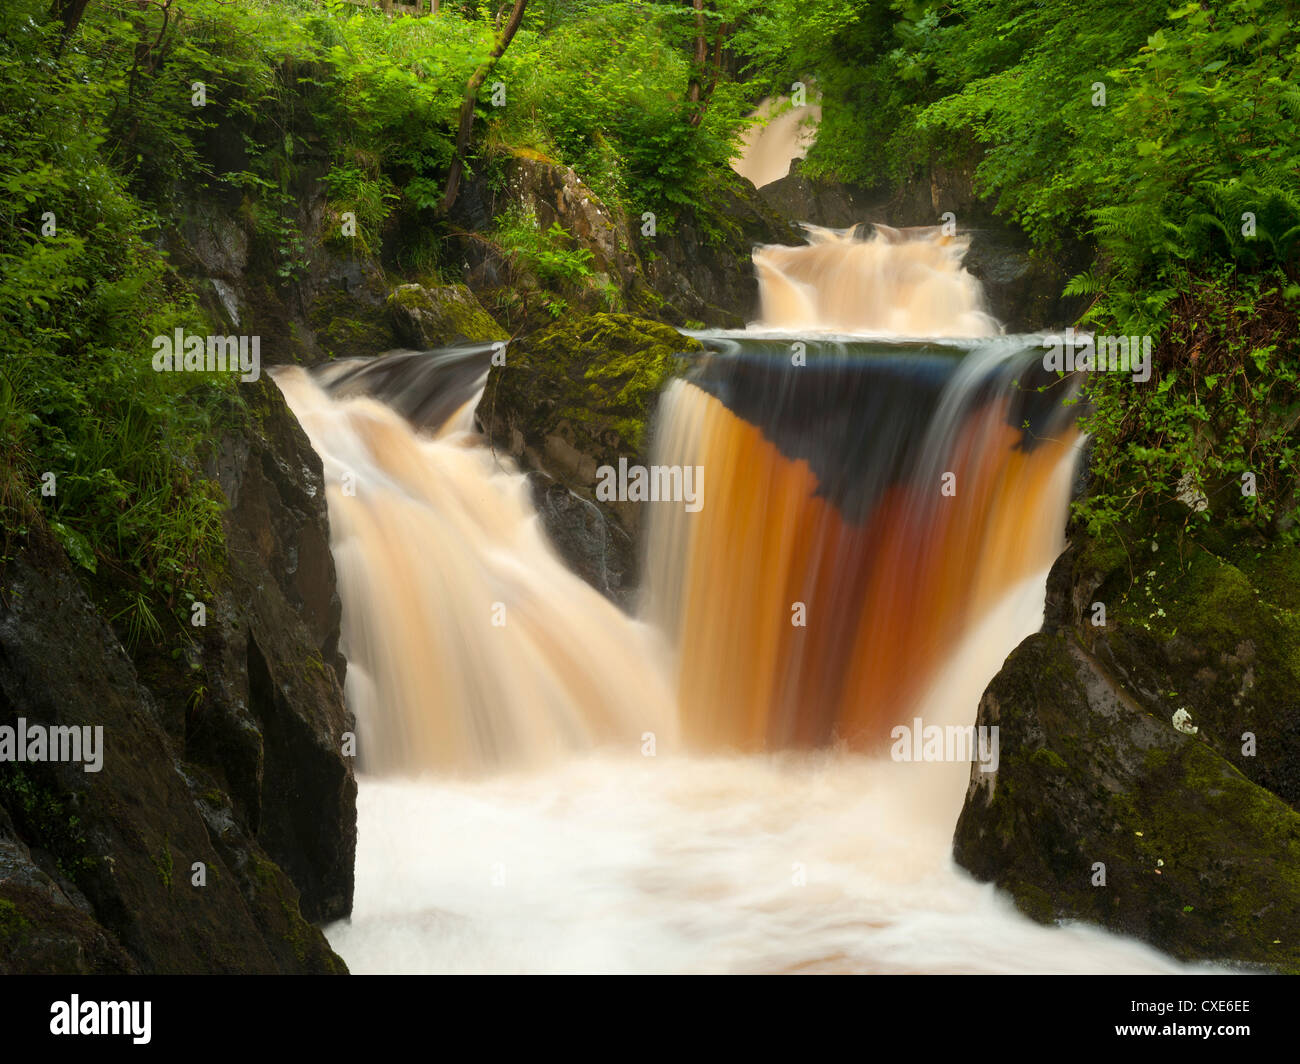 Ingleton Waterfalls, River Twiss, Ingleton, Yorkshire Dales, Yorkshire, England, United Kingdom, Europe - Stock Image